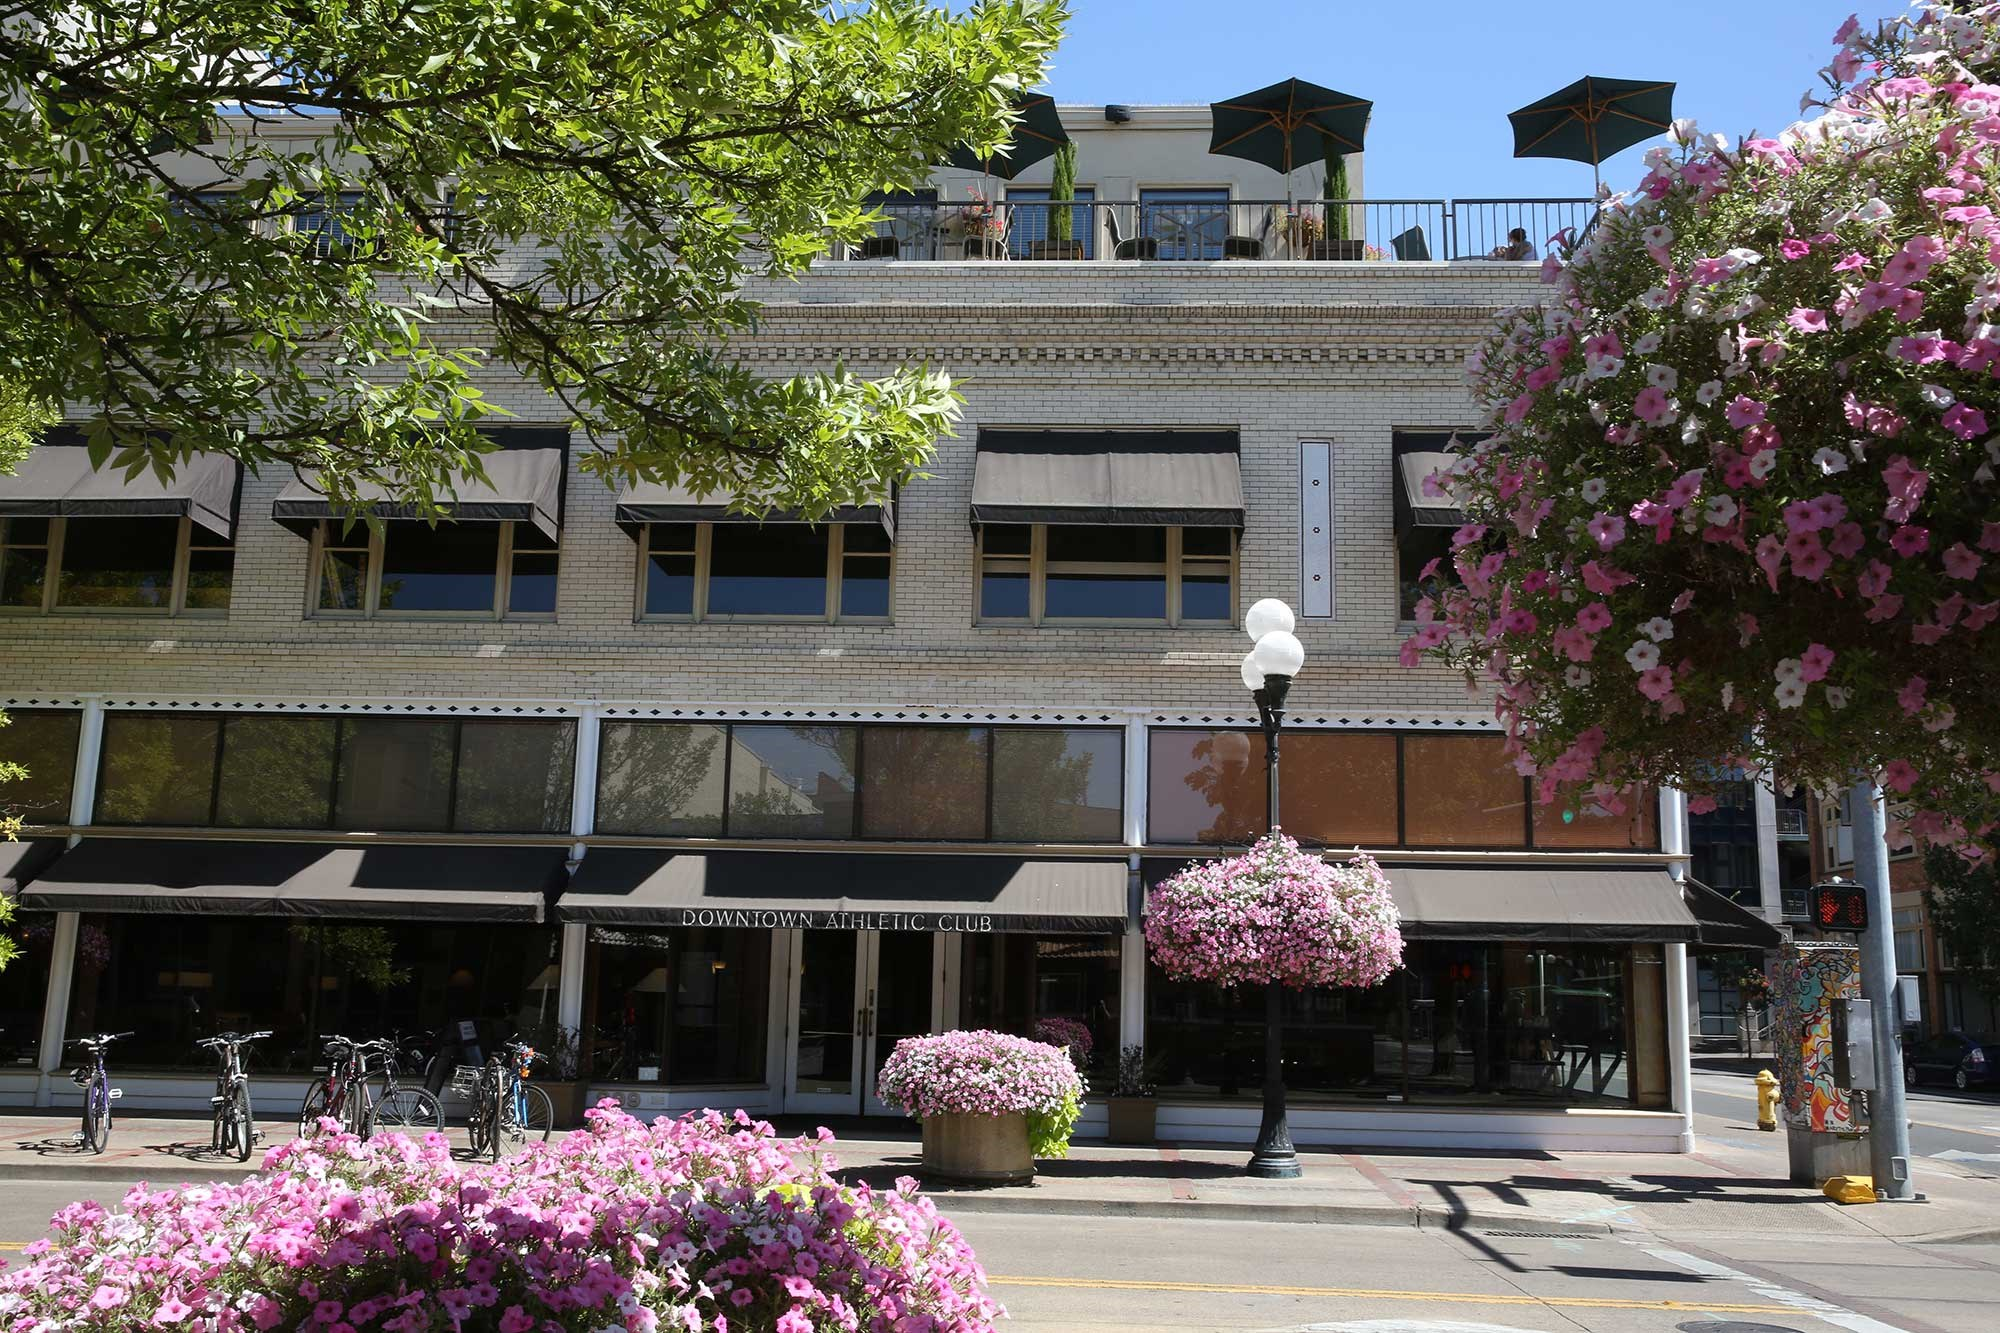 Downtown-Athletic-Club High street Terrace Eugene, OR